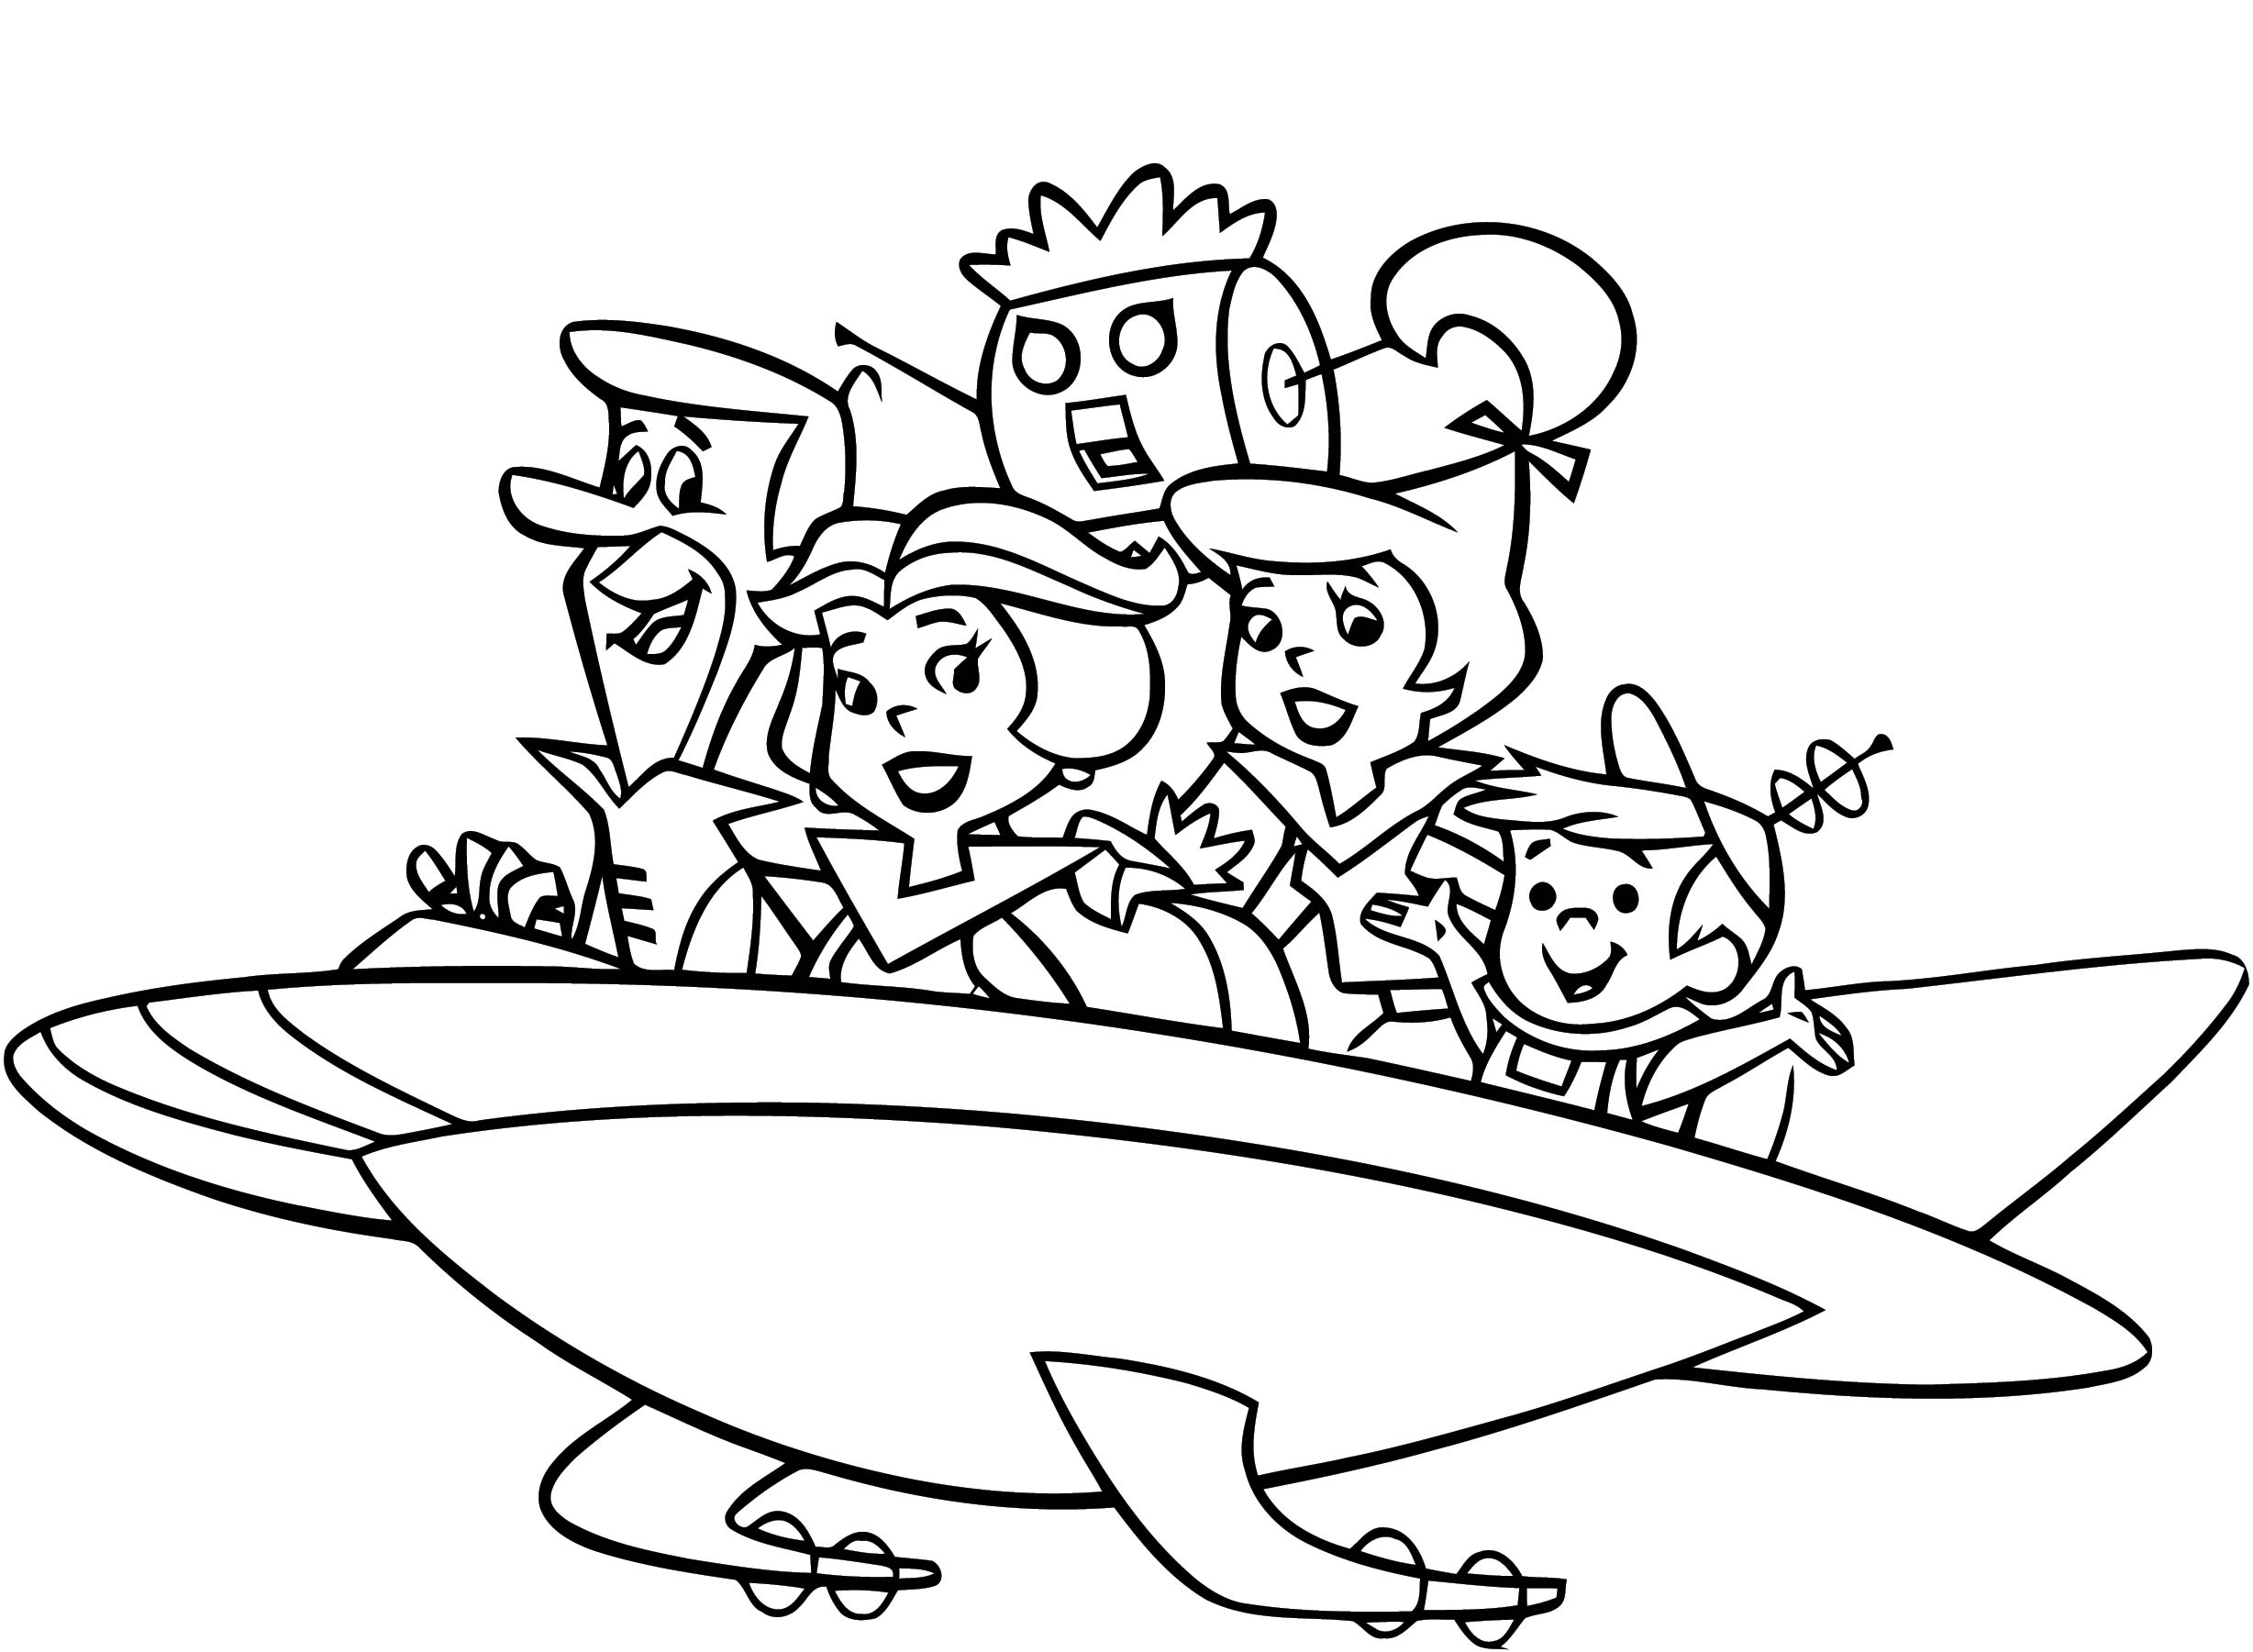 Jetsons 6 Coloring Page